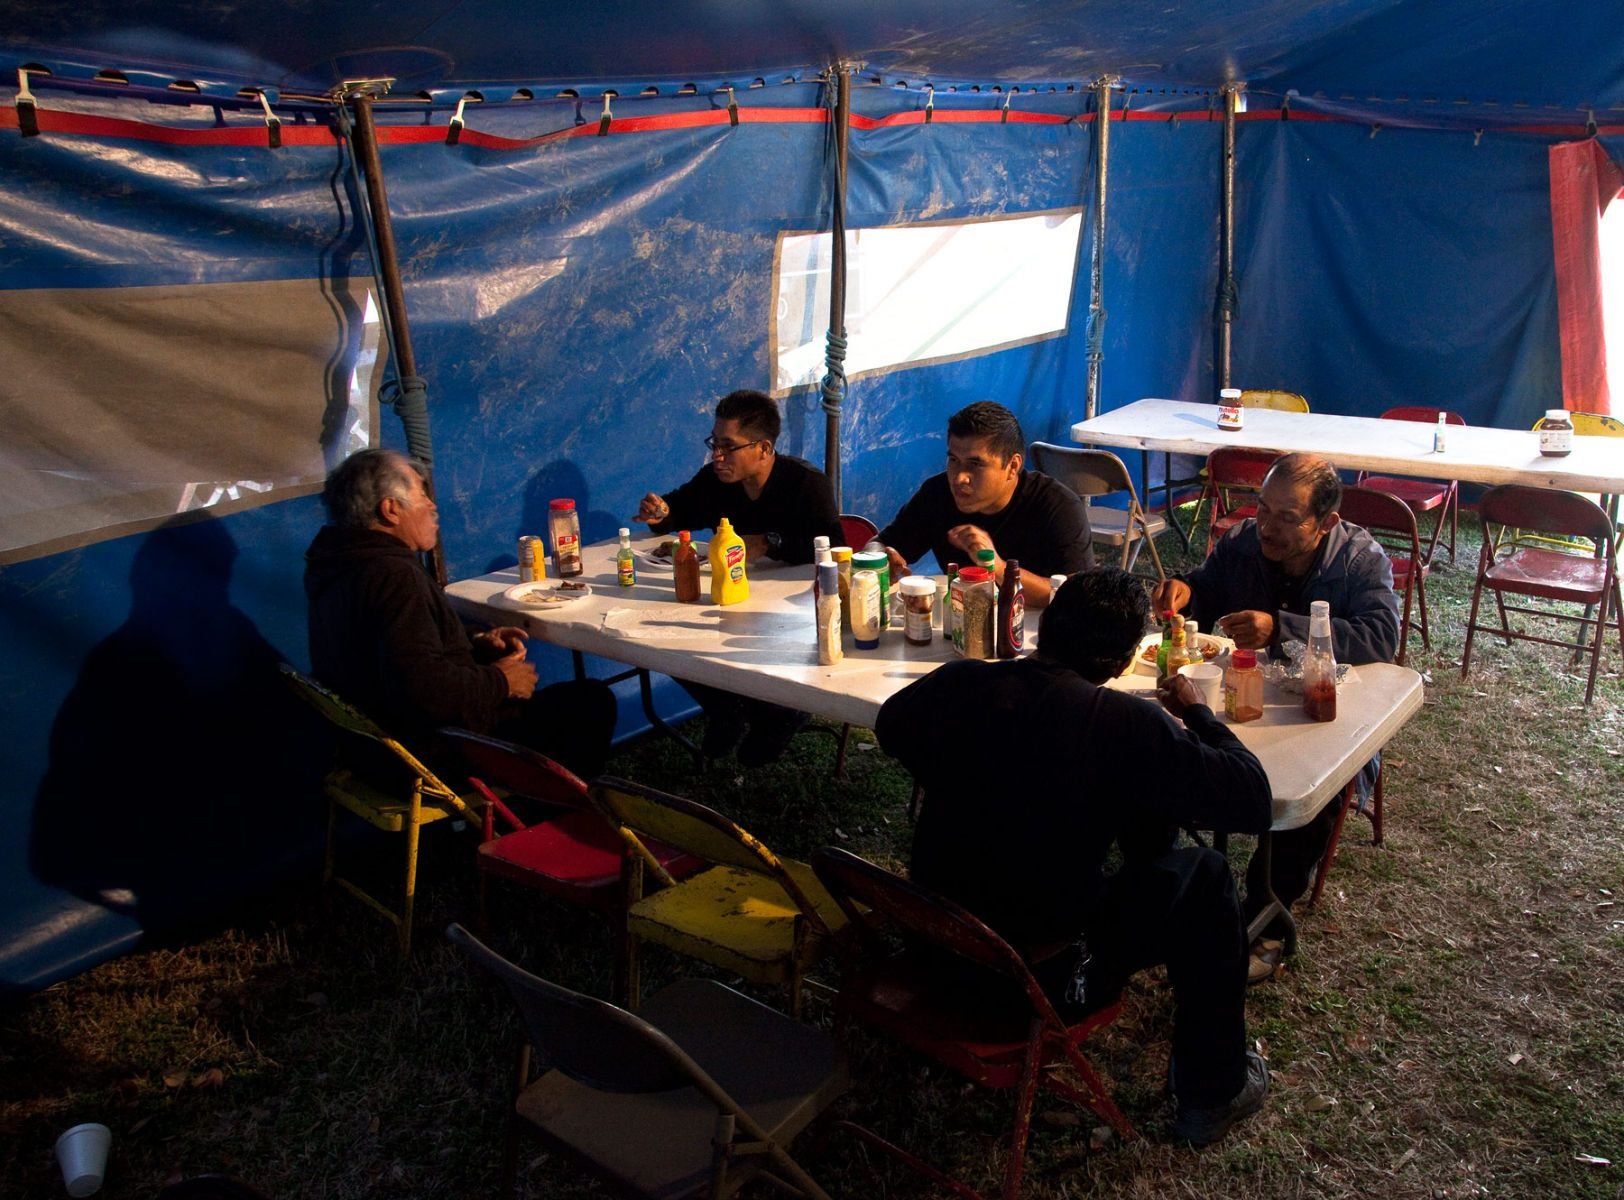 Tent crews grab a bite to eat in the mess tent at Cole Brothers Circus of the Stars during its stop in Myrtle Beach, South Carolina March 31, 2013. The circus prepares 3 meals a day for the 70 workers that travel with the circus. Traveling circuses such as the Cole Brothers Circus of the Stars, complete with it's traveling big top tent, set up their tent city in smaller markets all along the East Coast of the United States as they aim to bring the circus to rural areas. The Cole Brothers Circus, now in its 129th edition, travels to 100 cities in 20-25 states and stages 250 shows a year.  REUTERS/Randall Hill   (UNITED STATES)